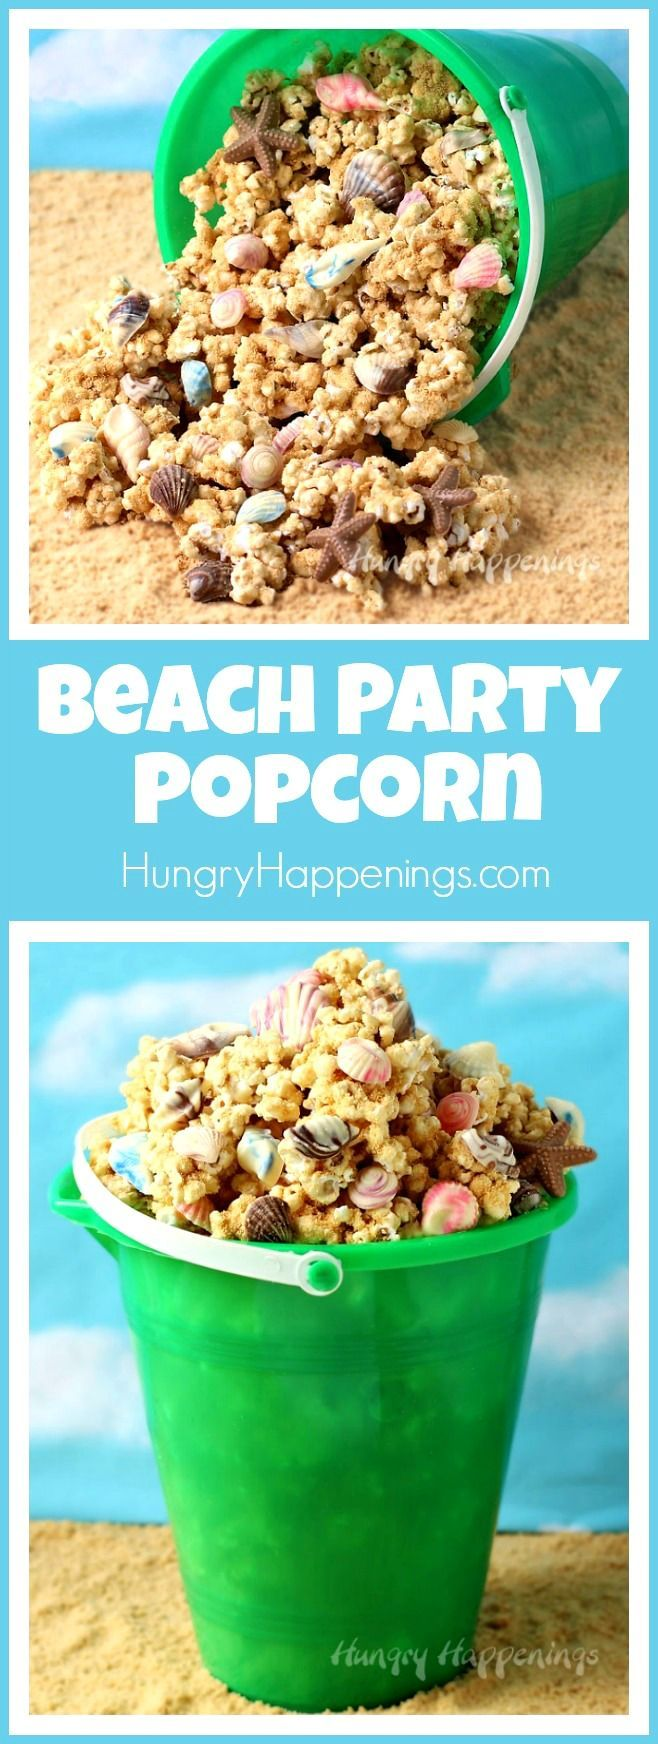 Fill up your beach pail with crunchy peanut butter popcorn that's coated in sandy looking cookie crumbs and speckled with homemade chocolate sea shells. This Beach Party Popcorn will make a festive treat for your pool party or beach themed events. - From http://hungryhappenings.com